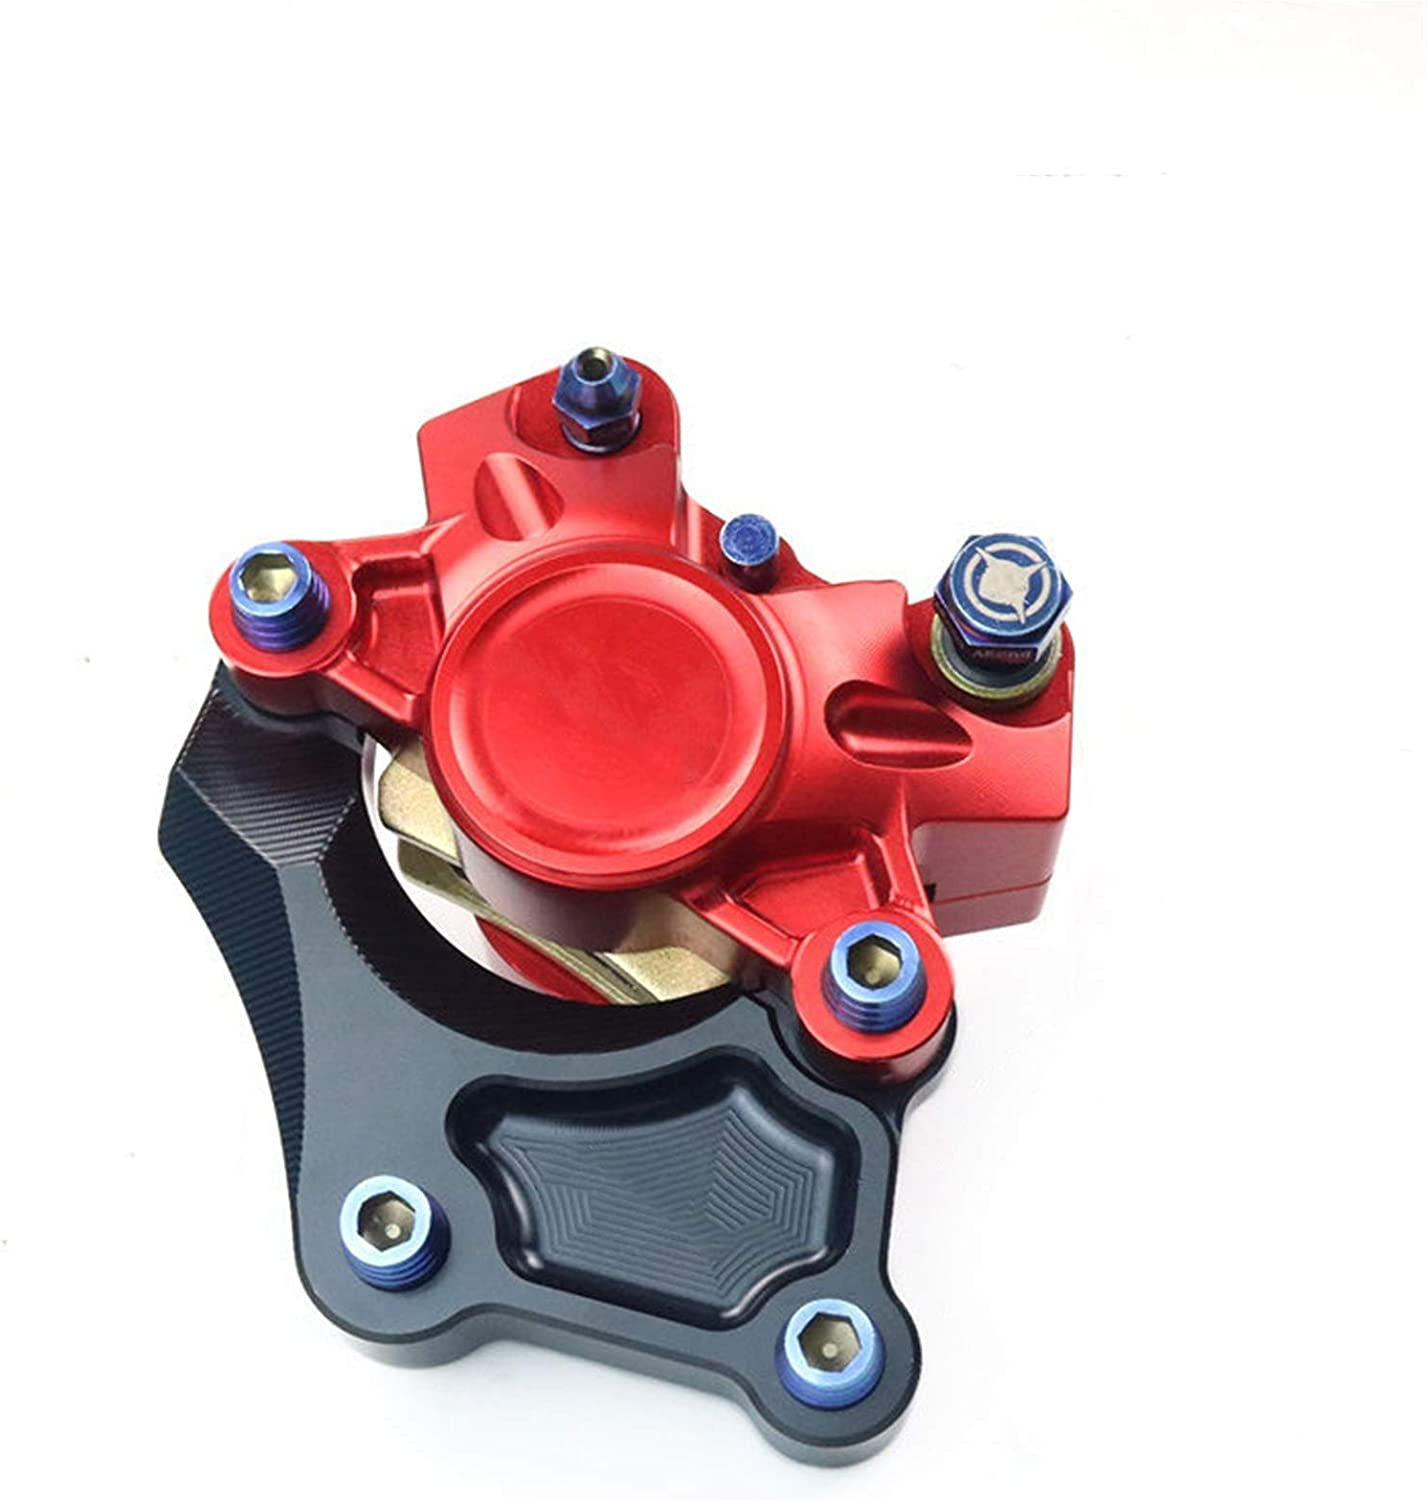 CMYYFA Brake Caliper with Adapter for Motorcyc Most Challenge the lowest price of Japan ☆ Suitable Very popular kit